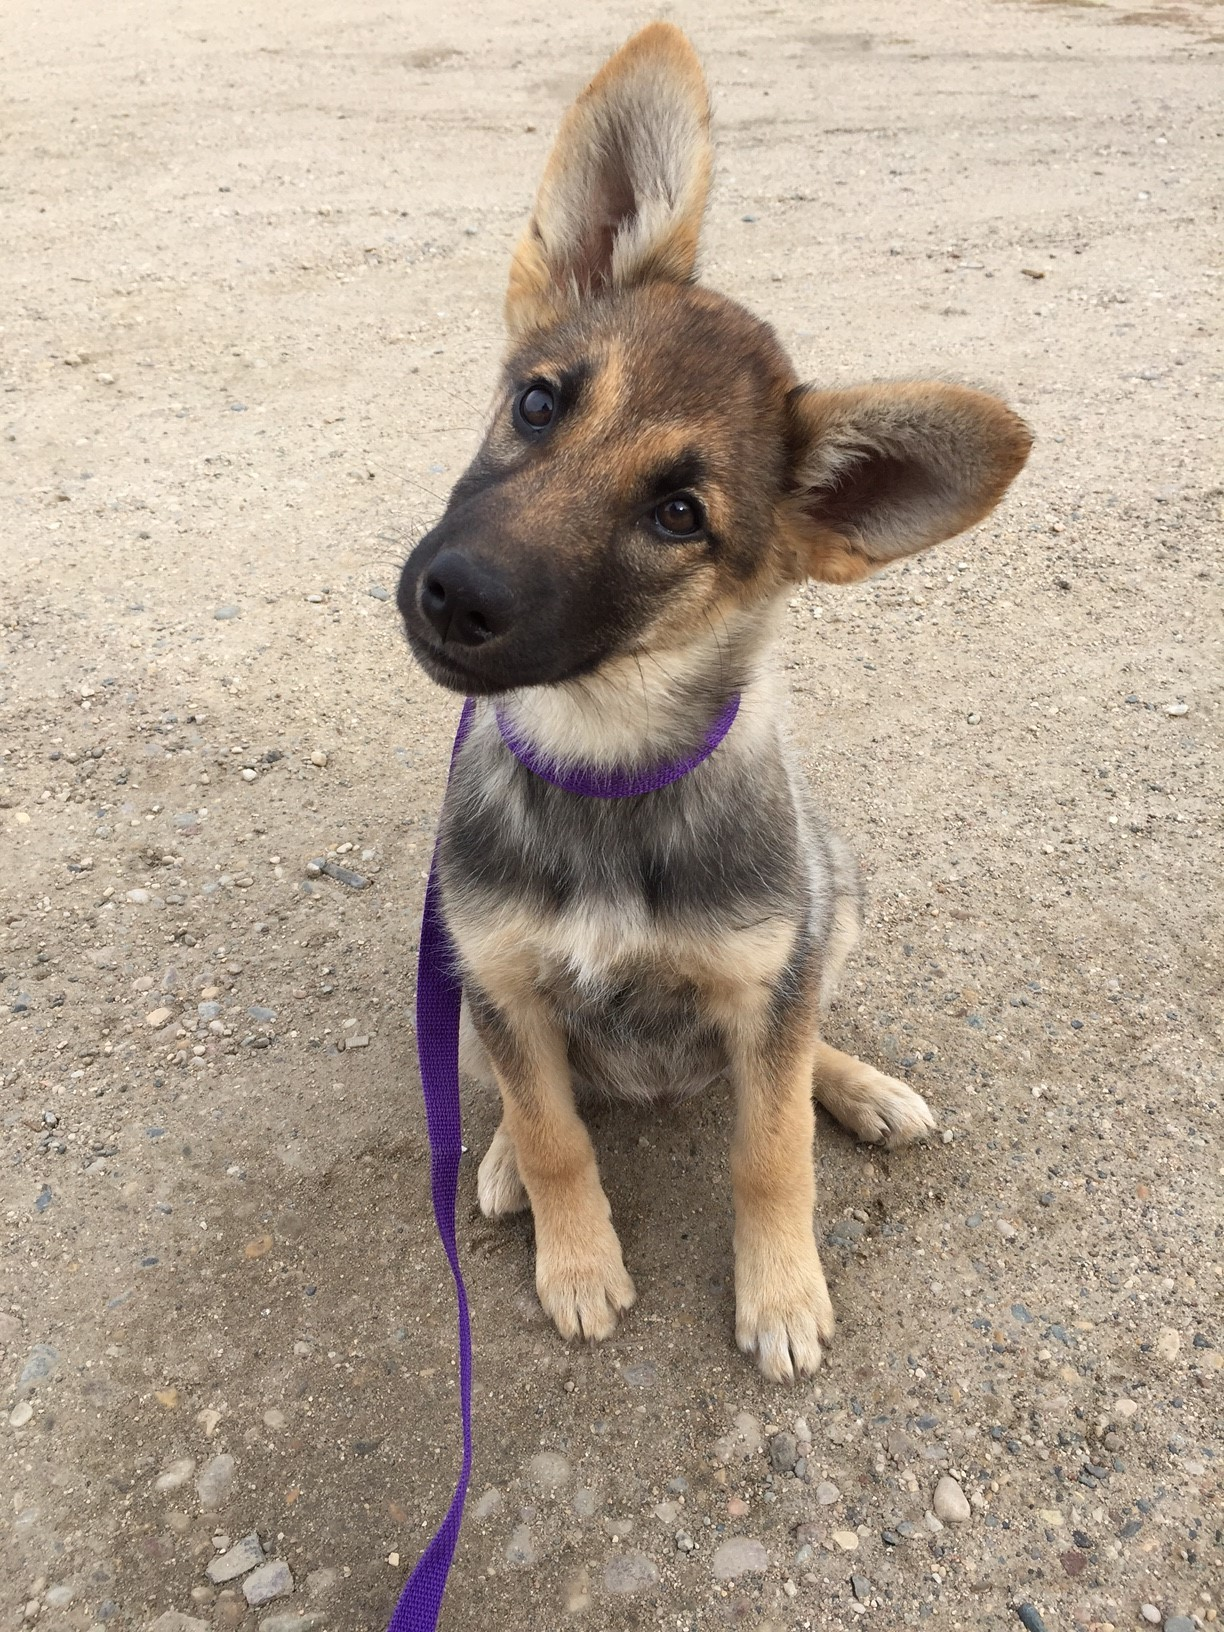 Pets For Adoption At Red Lake Rosie S Rescue In St Paul Mn Petfinder